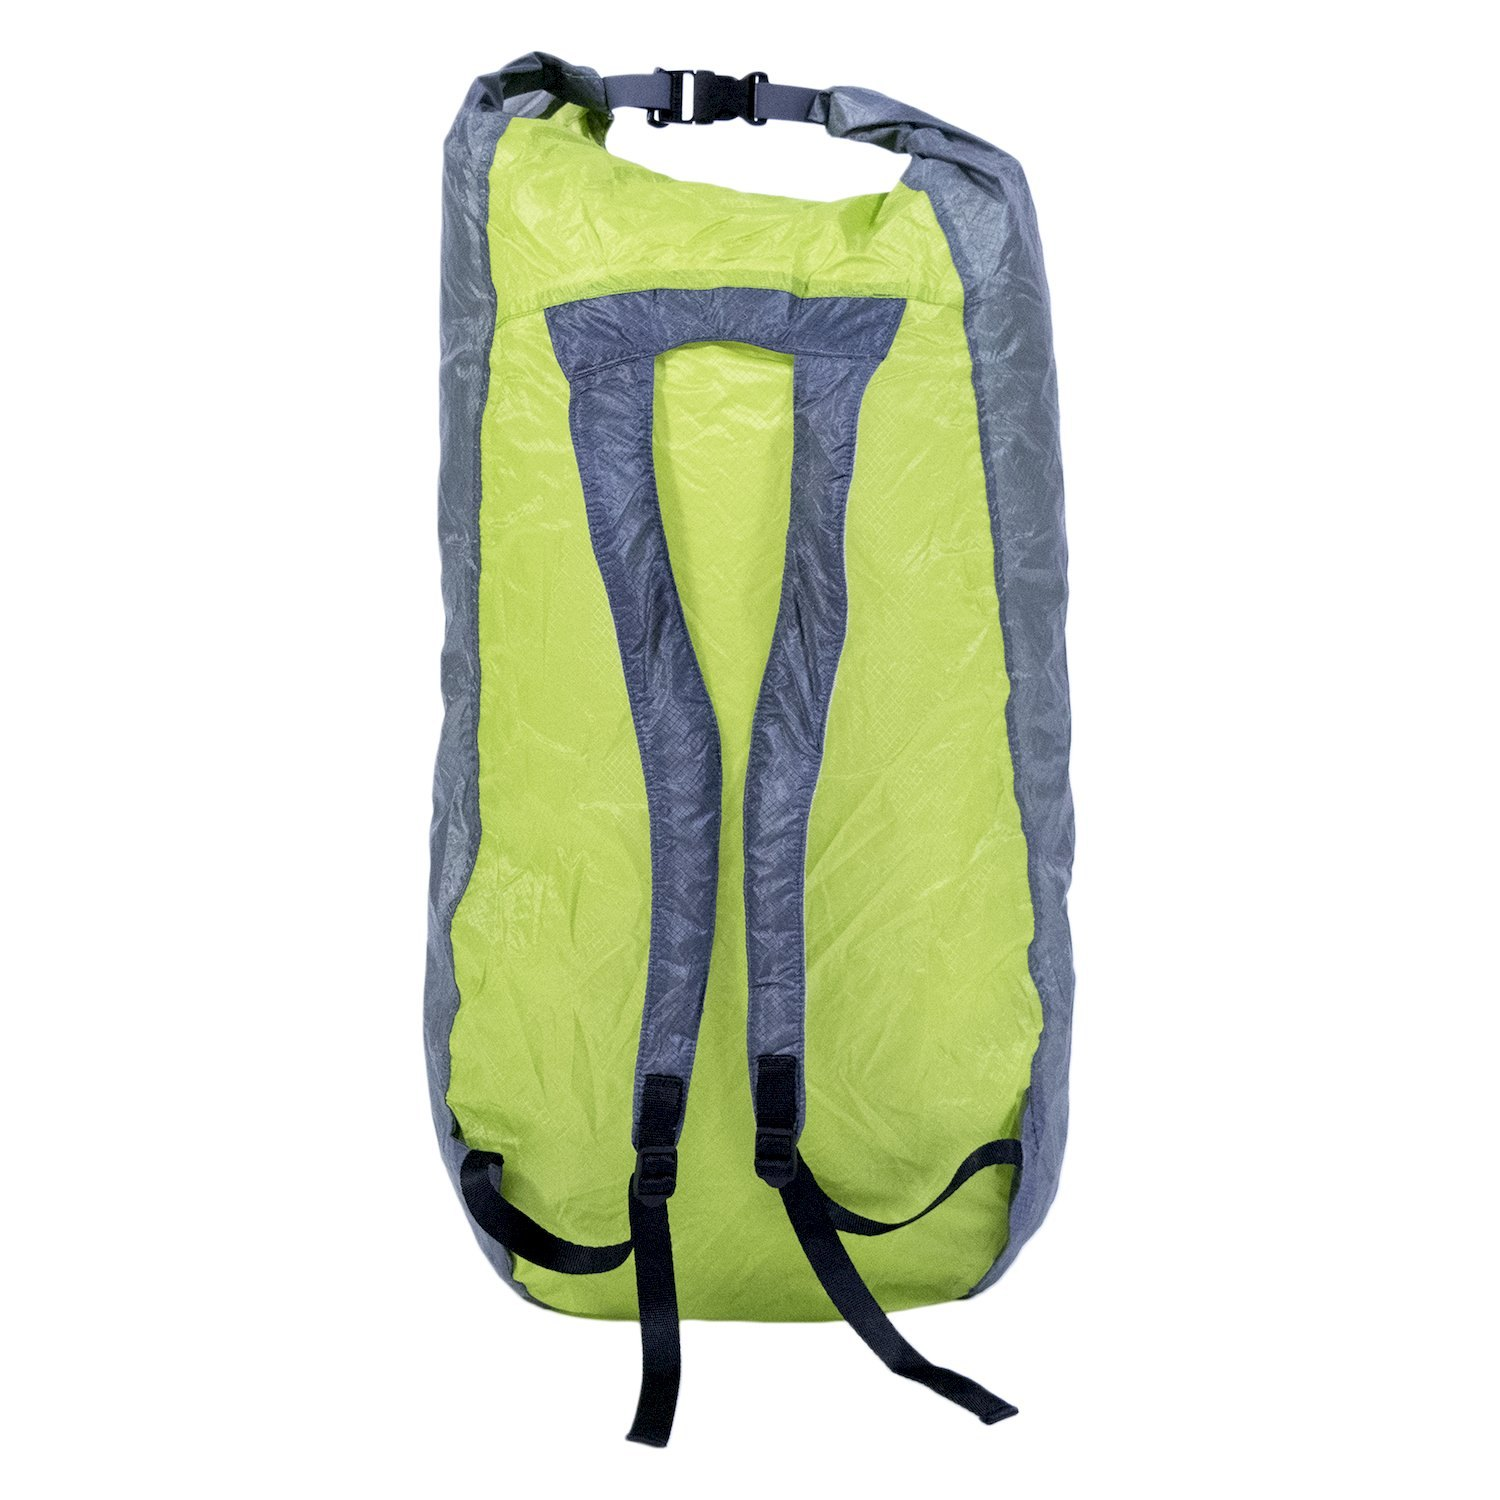 d9acedbf98 Avalanche® - Kuna Light Daypack Backpack - RECREATIONiD.com